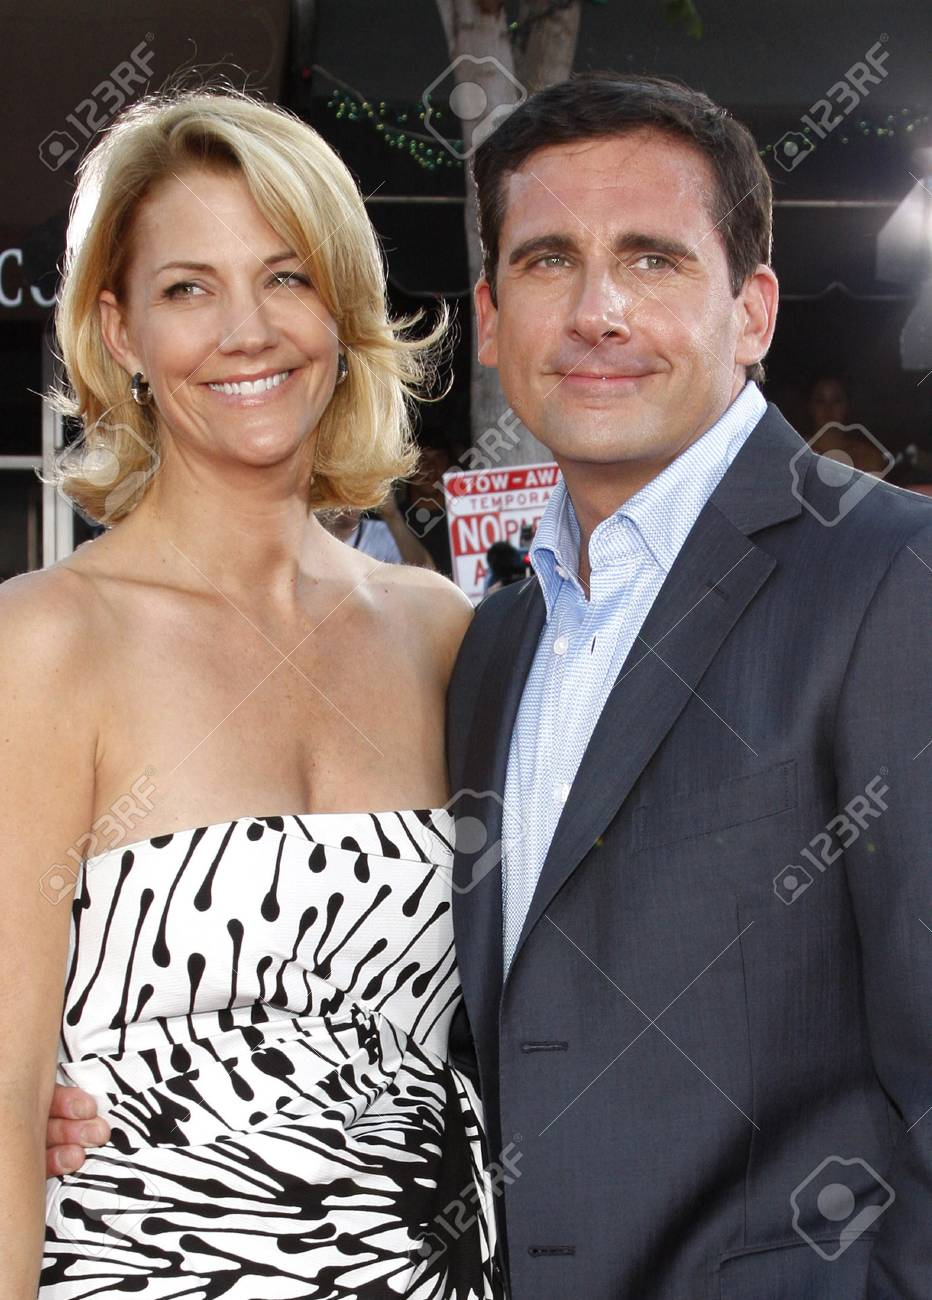 Forum on this topic: Cheryl Hines, nancy-carell/